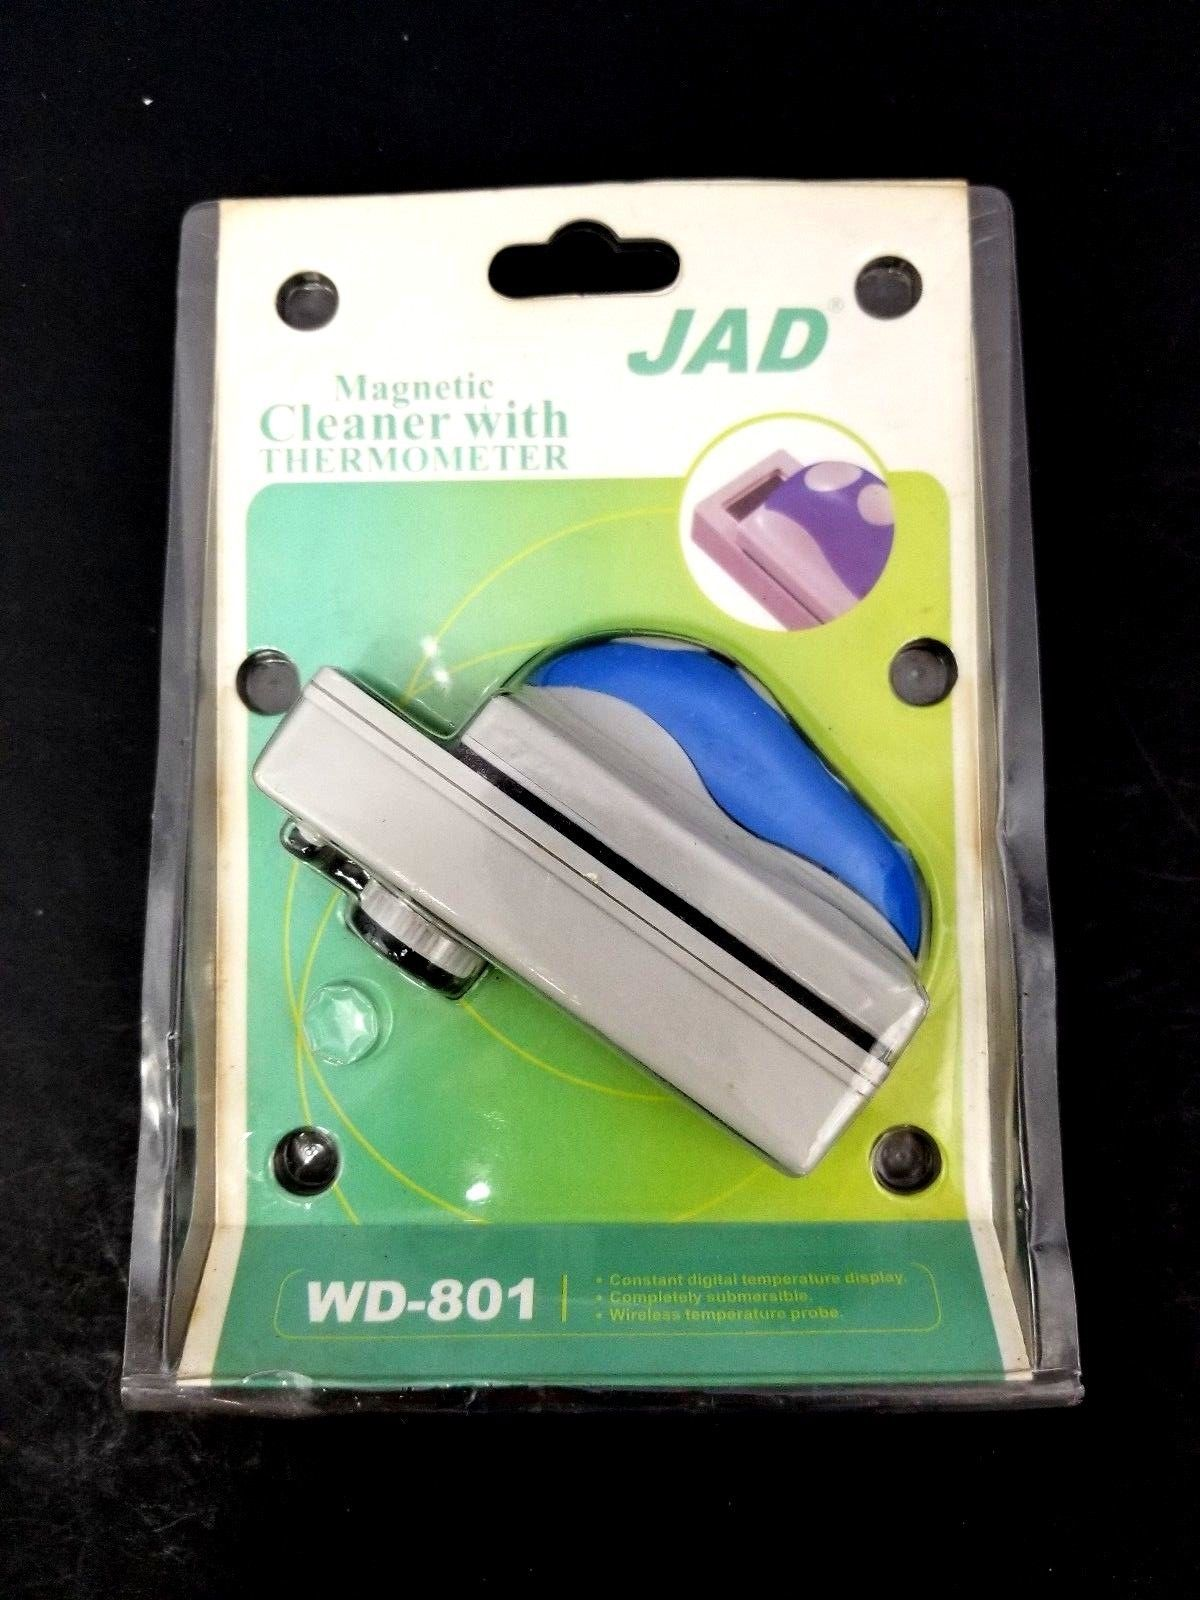 JAD Magnetic Aquarium Fish Tank Cleaner WD-801 with Thermometer New 692478121139